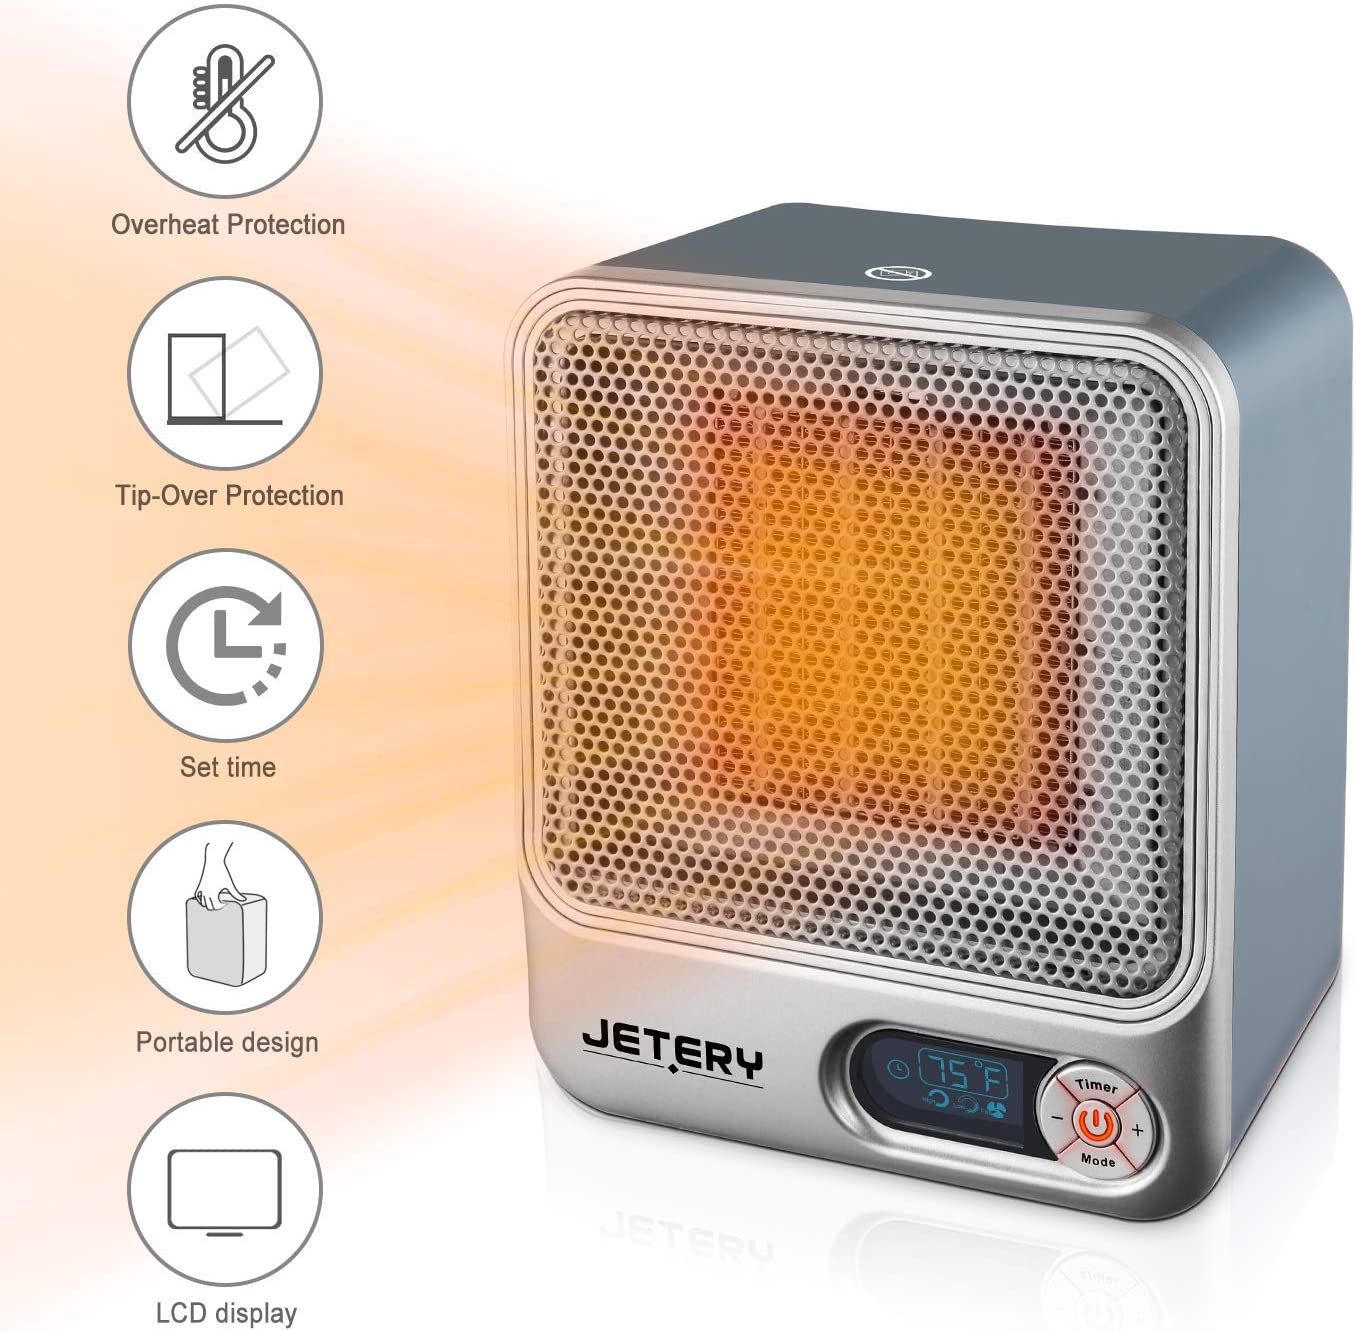 JETERY 1500W PTC Space Heater, Heating System for Bedroom & Office, Portable Electric Heater with Adjustable Thermostat - Overheat Protection, Silver